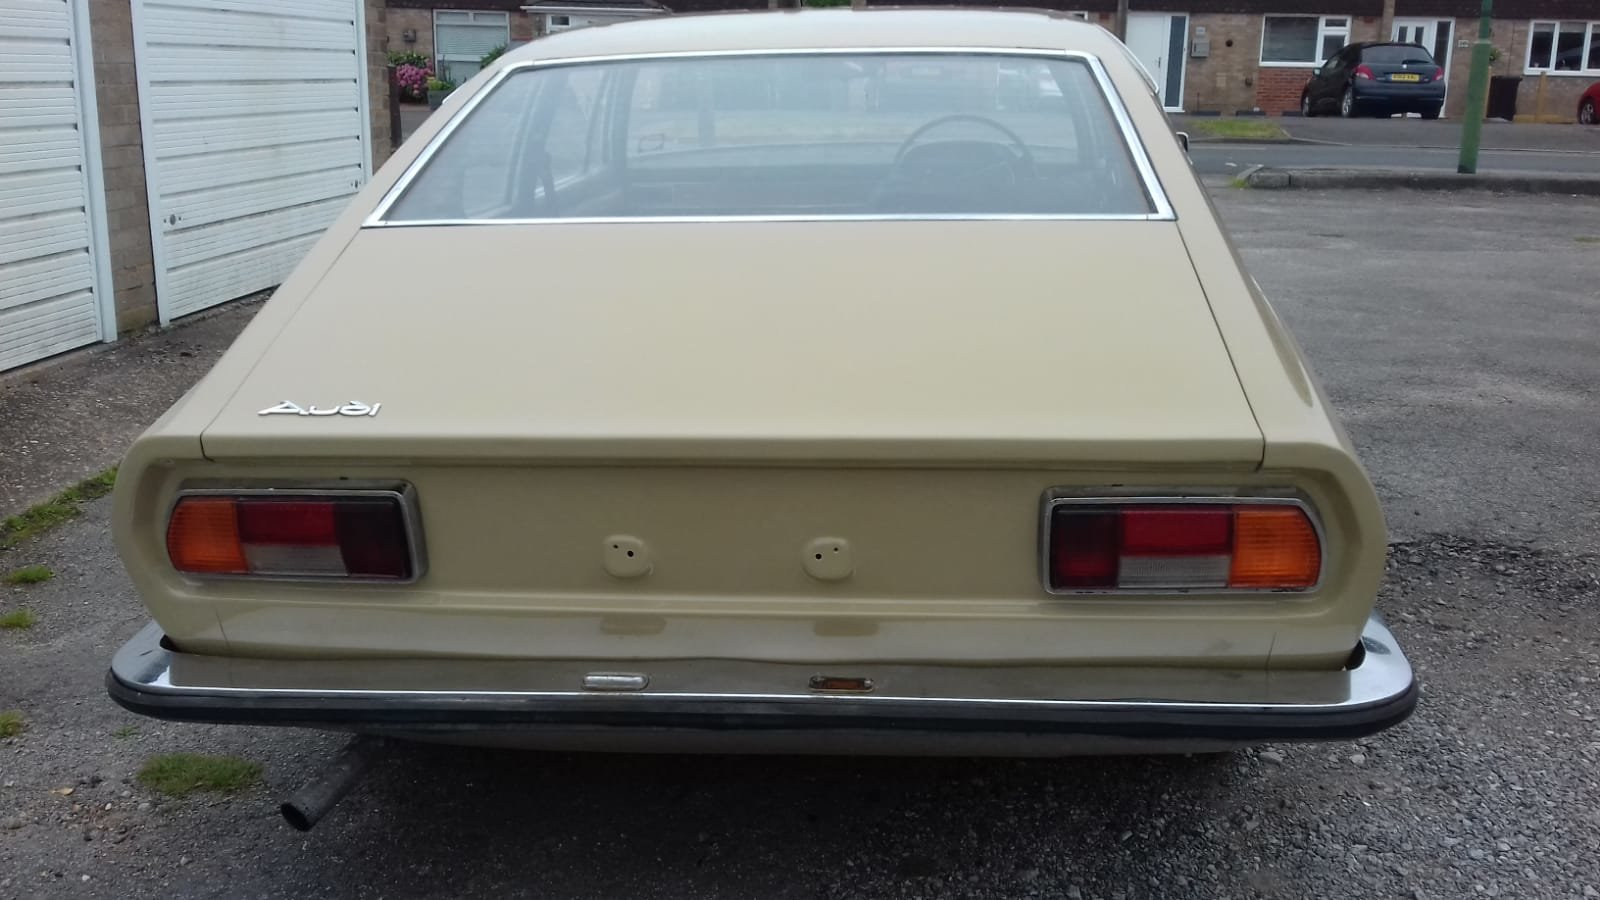 Audi 100 S Coupe - Sahara Beige  - Project 1972 For Sale (picture 3 of 6)